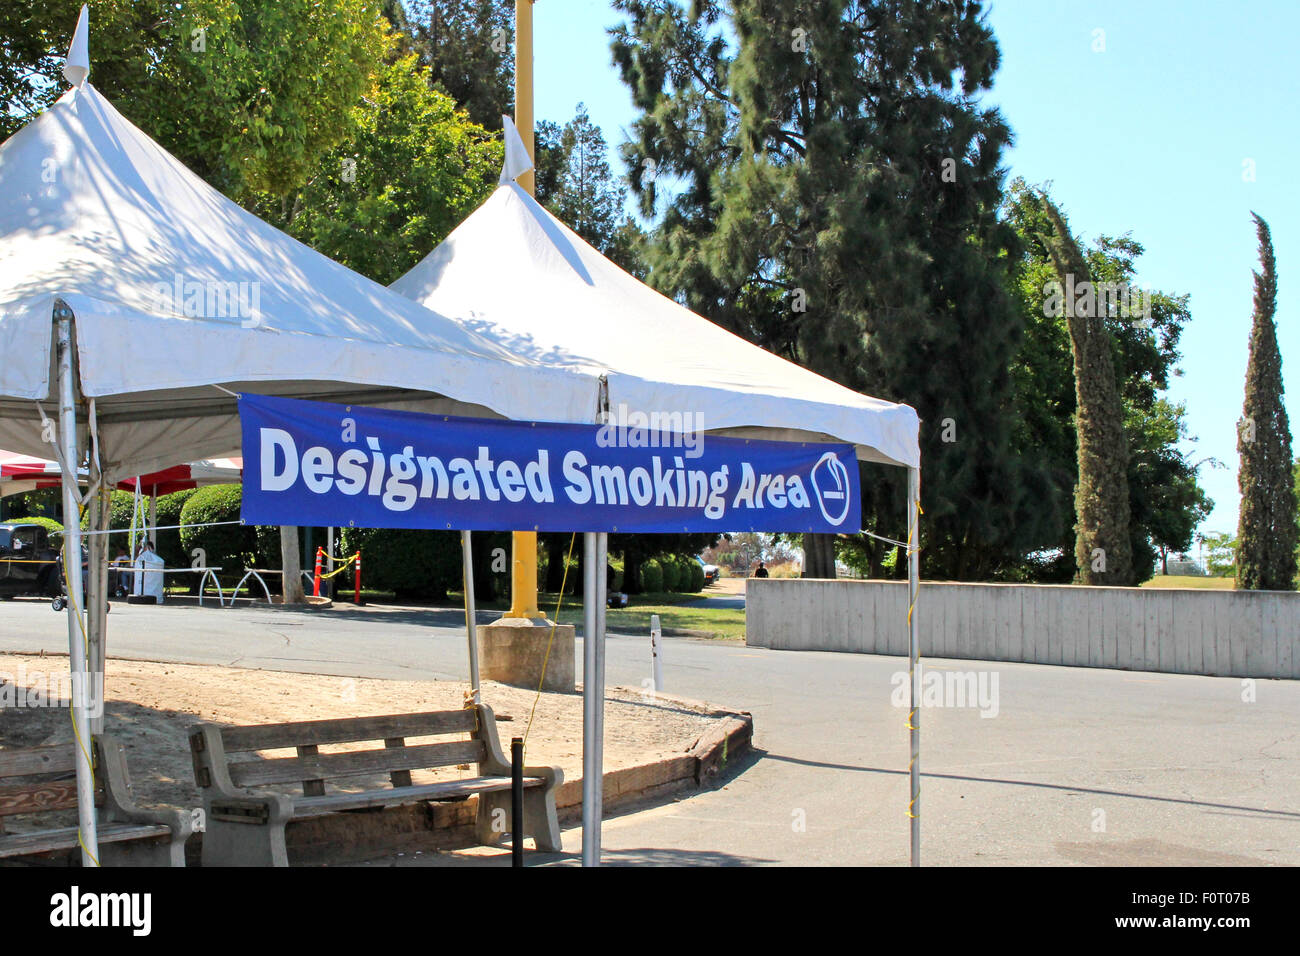 Designated smoking area & Designated smoking area Stock Photo: 86578895 - Alamy